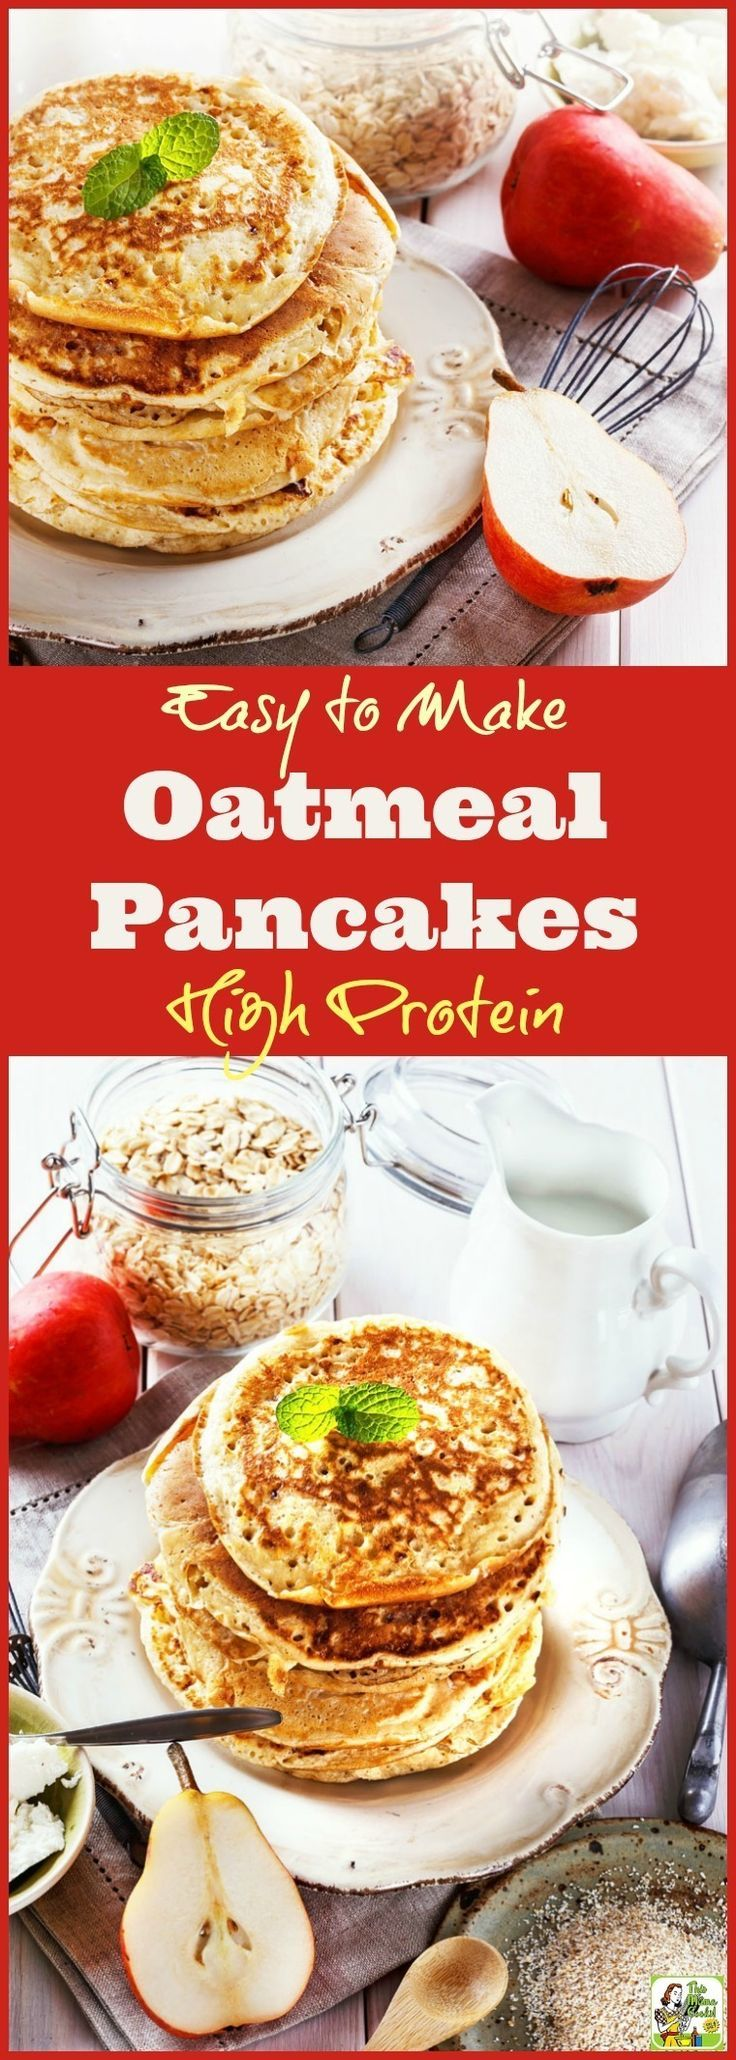 This oatmeal and Greek yogurt protein pancake recipe is easy to make and naturally gluten free. Click to learn how to get this recipe for these Easy to Make High Protein Oatmeal Pancakes!